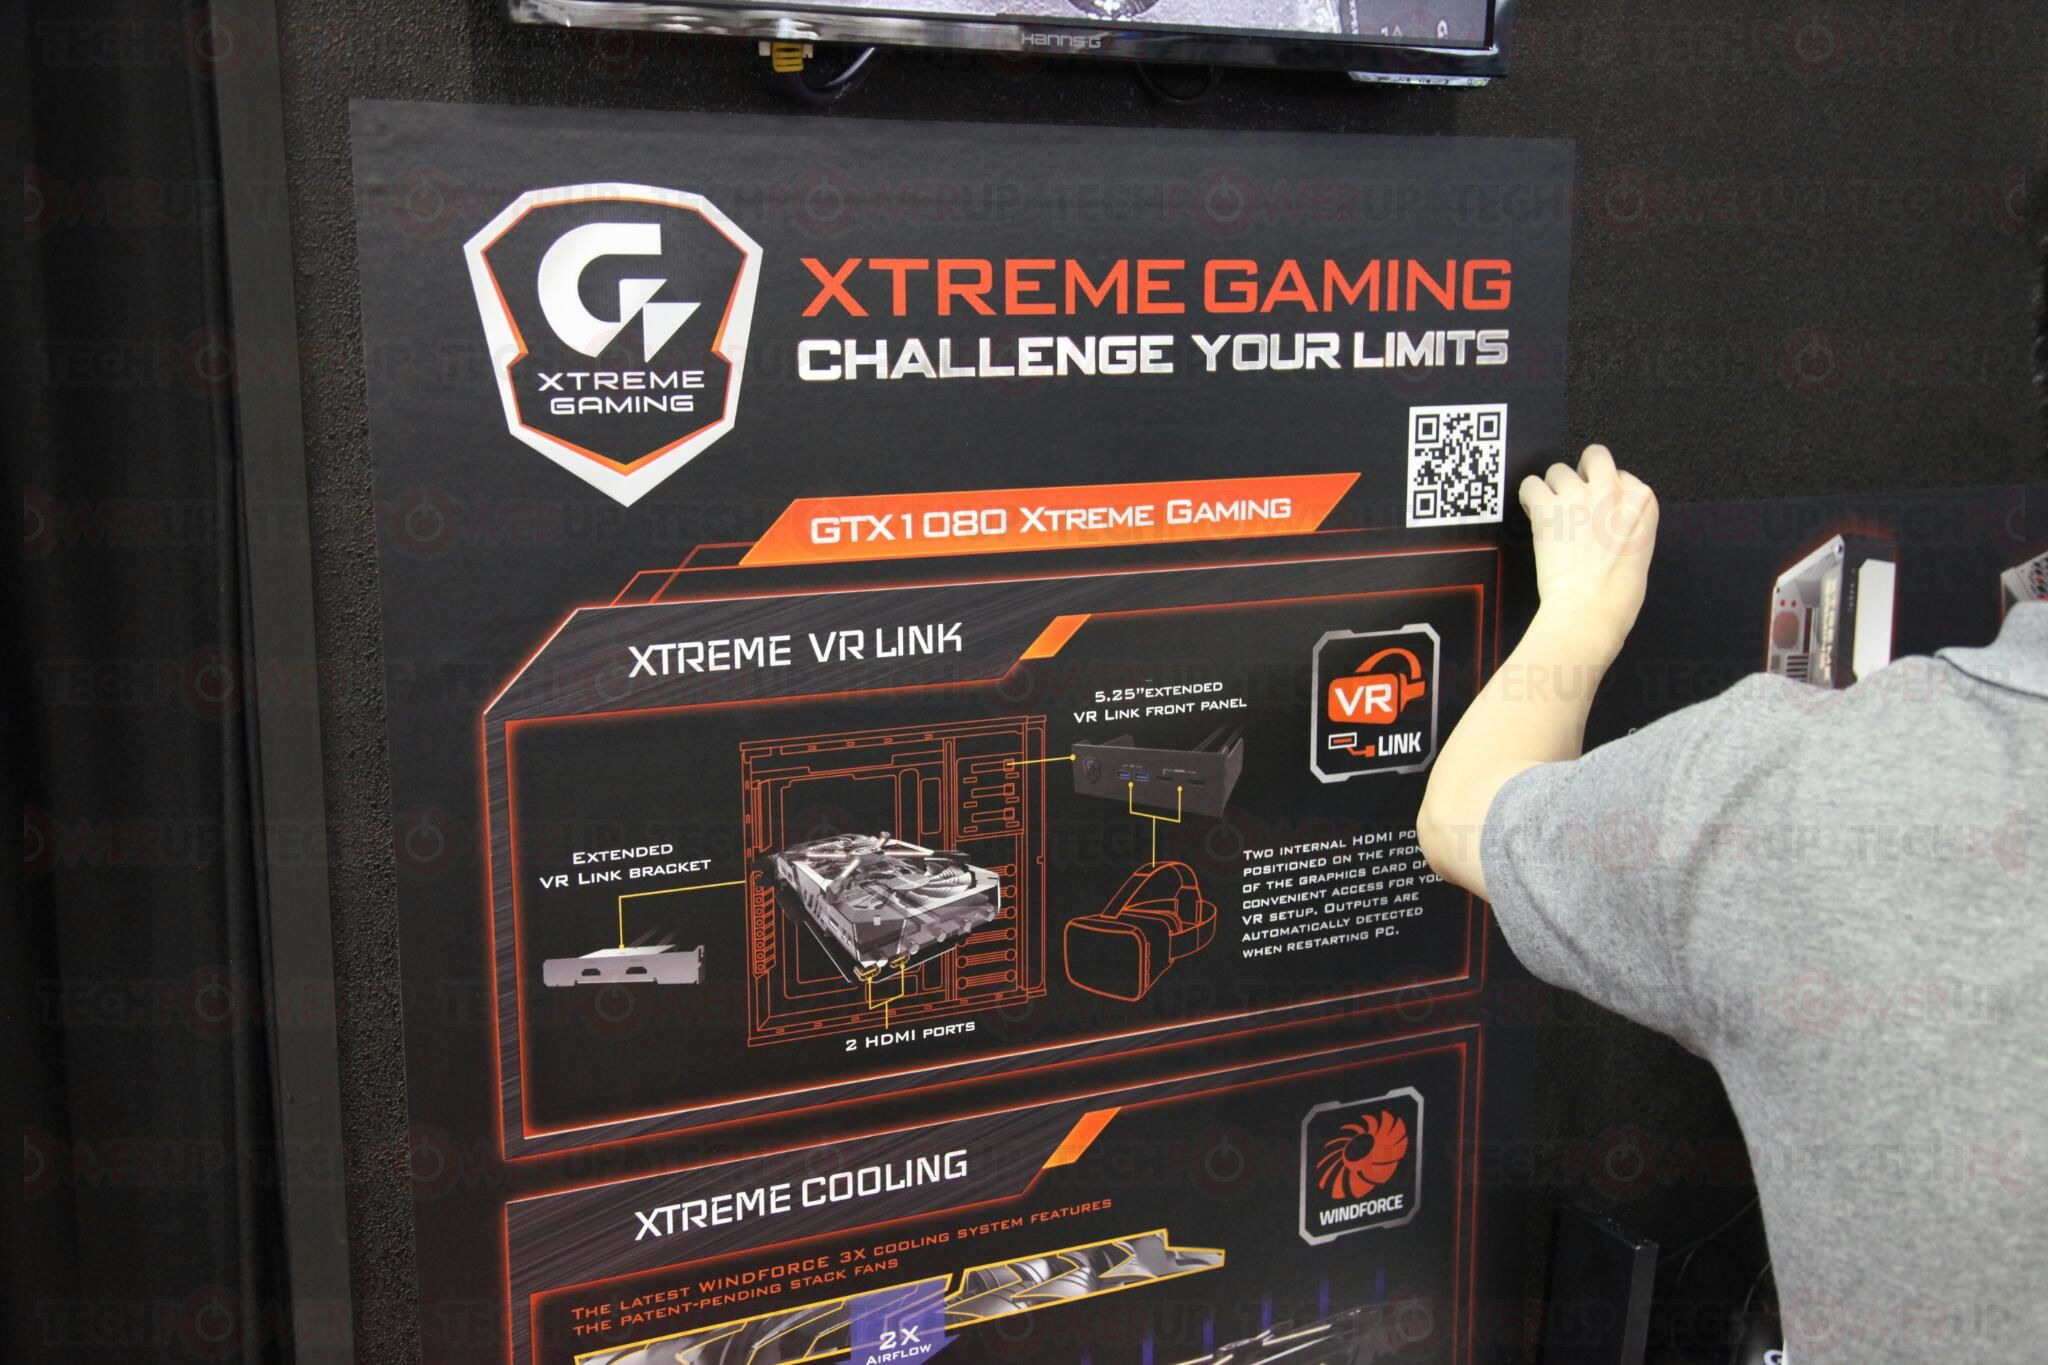 GIGABYTE GeForce GTX 1080 XTREME Is The GPU You Need For VR